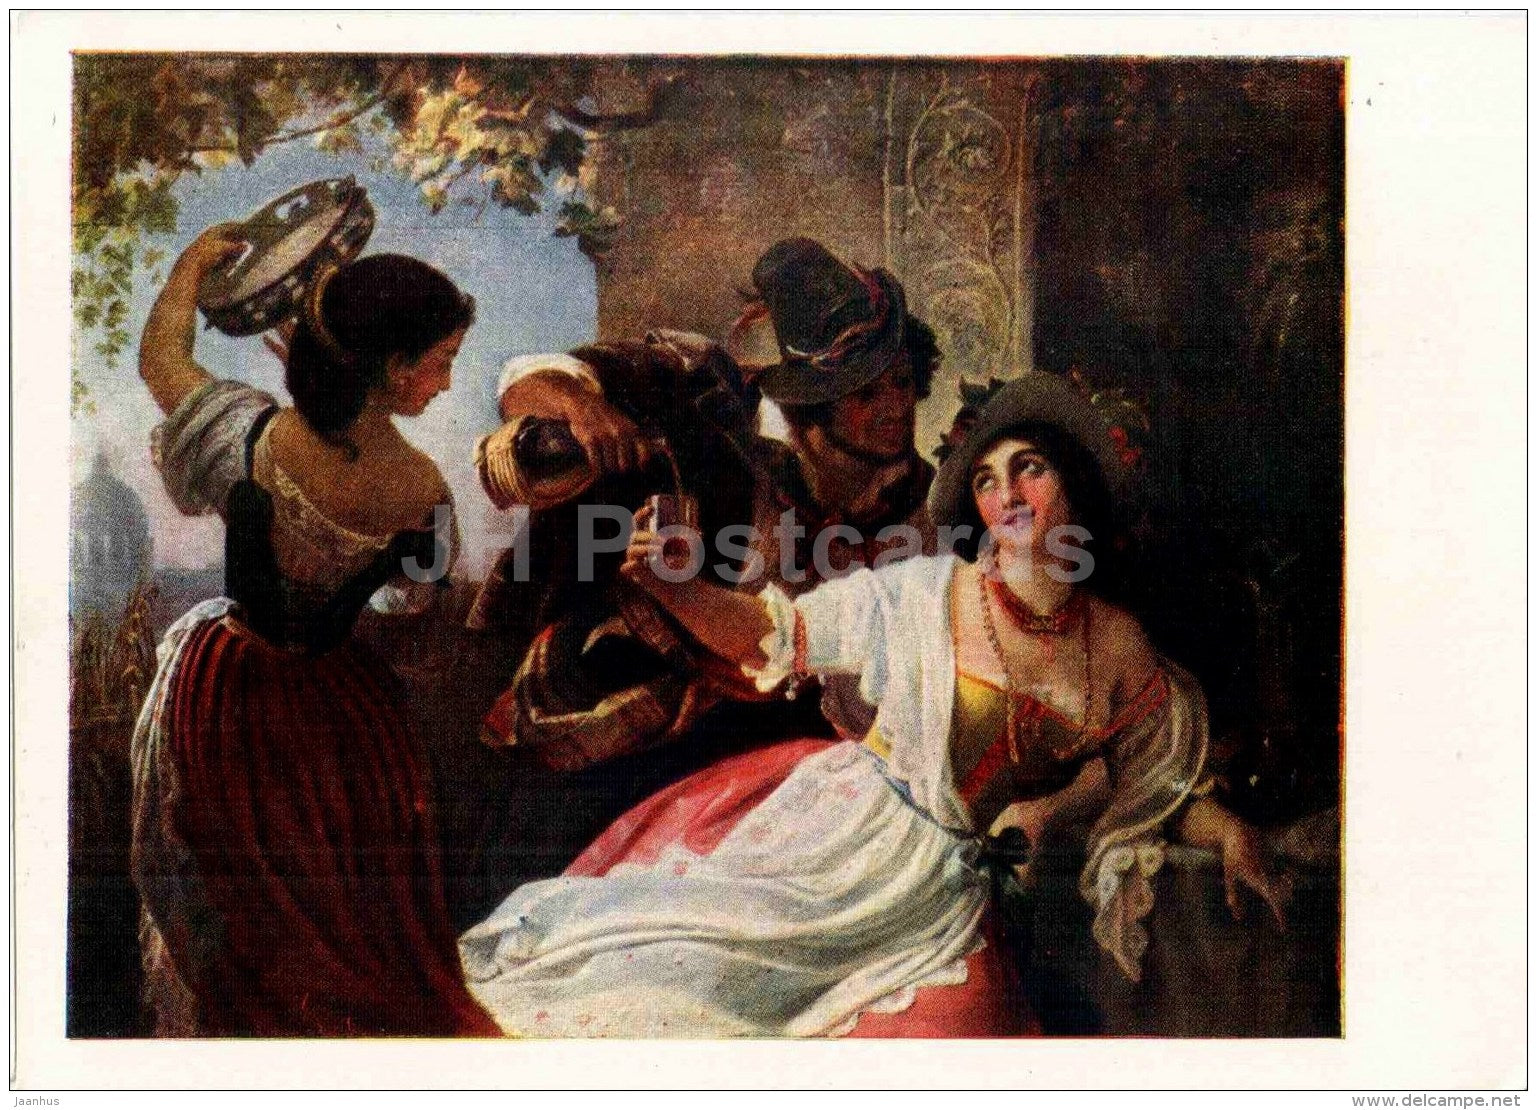 painting by P. Orlov - October Celebration in Rome - Russian art - 1959 - Russia USSR - unused - JH Postcards